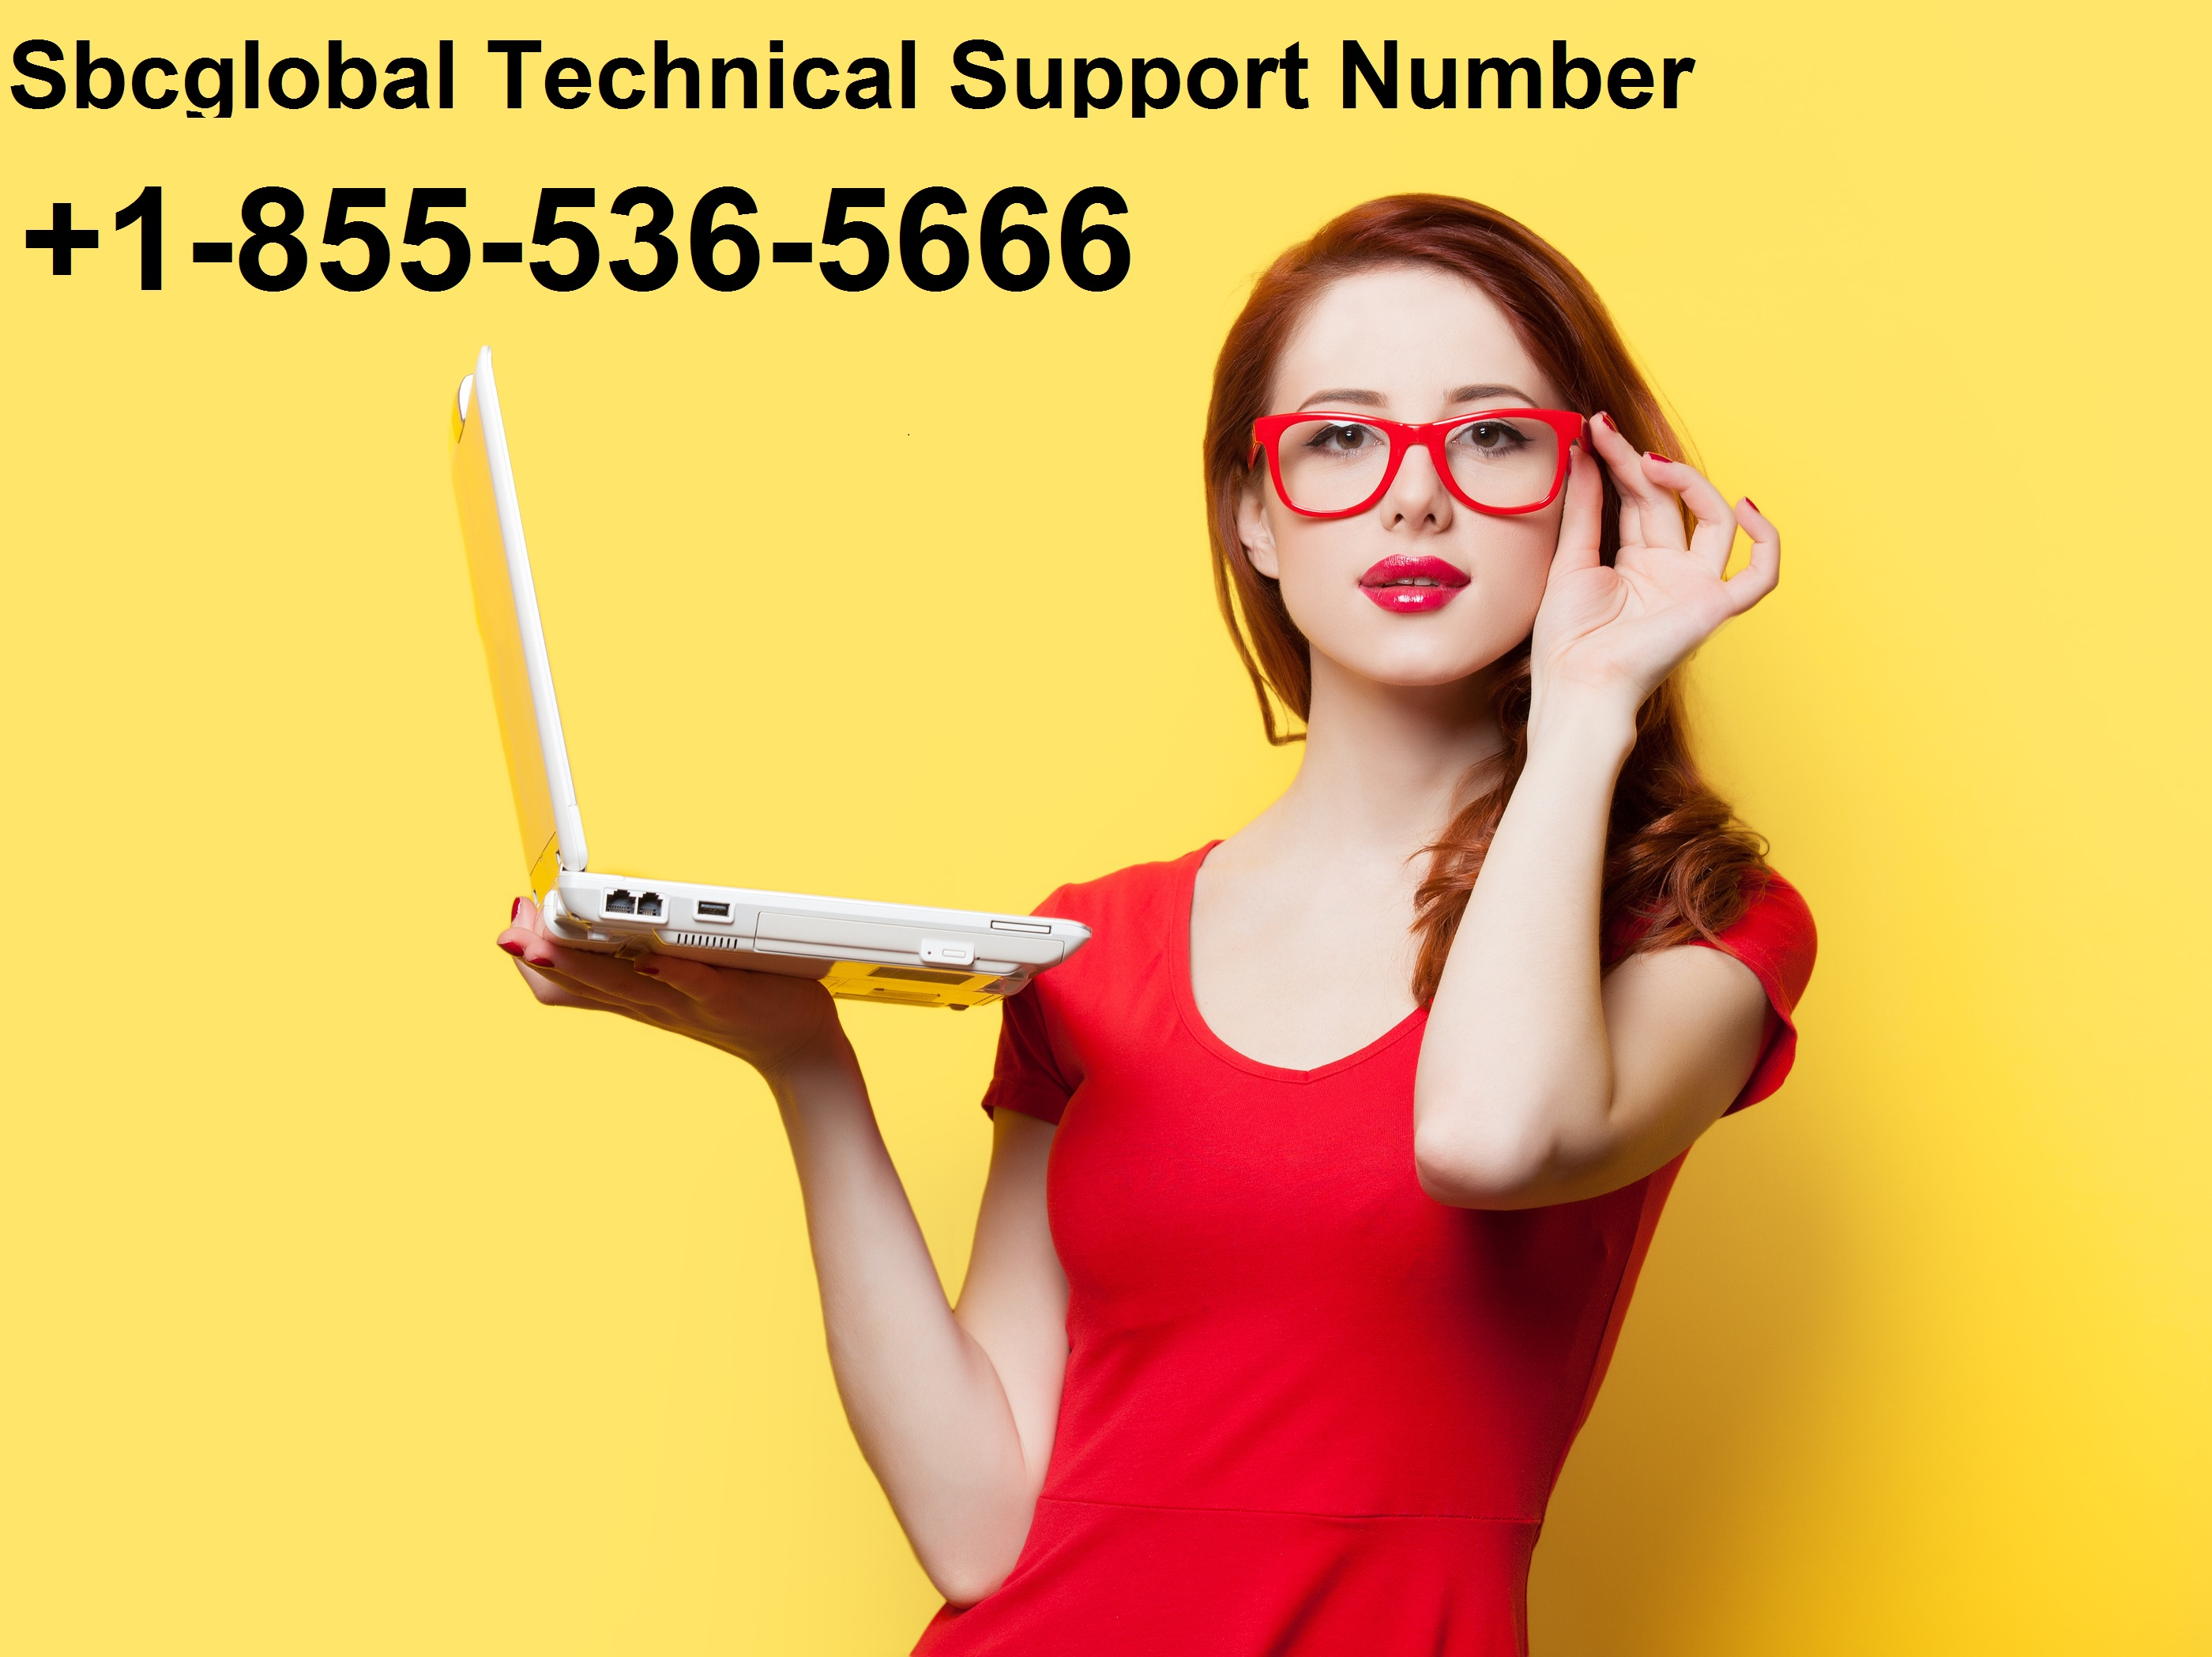 Sbcglobal Tech Support Phone Number +1-855-536-5666